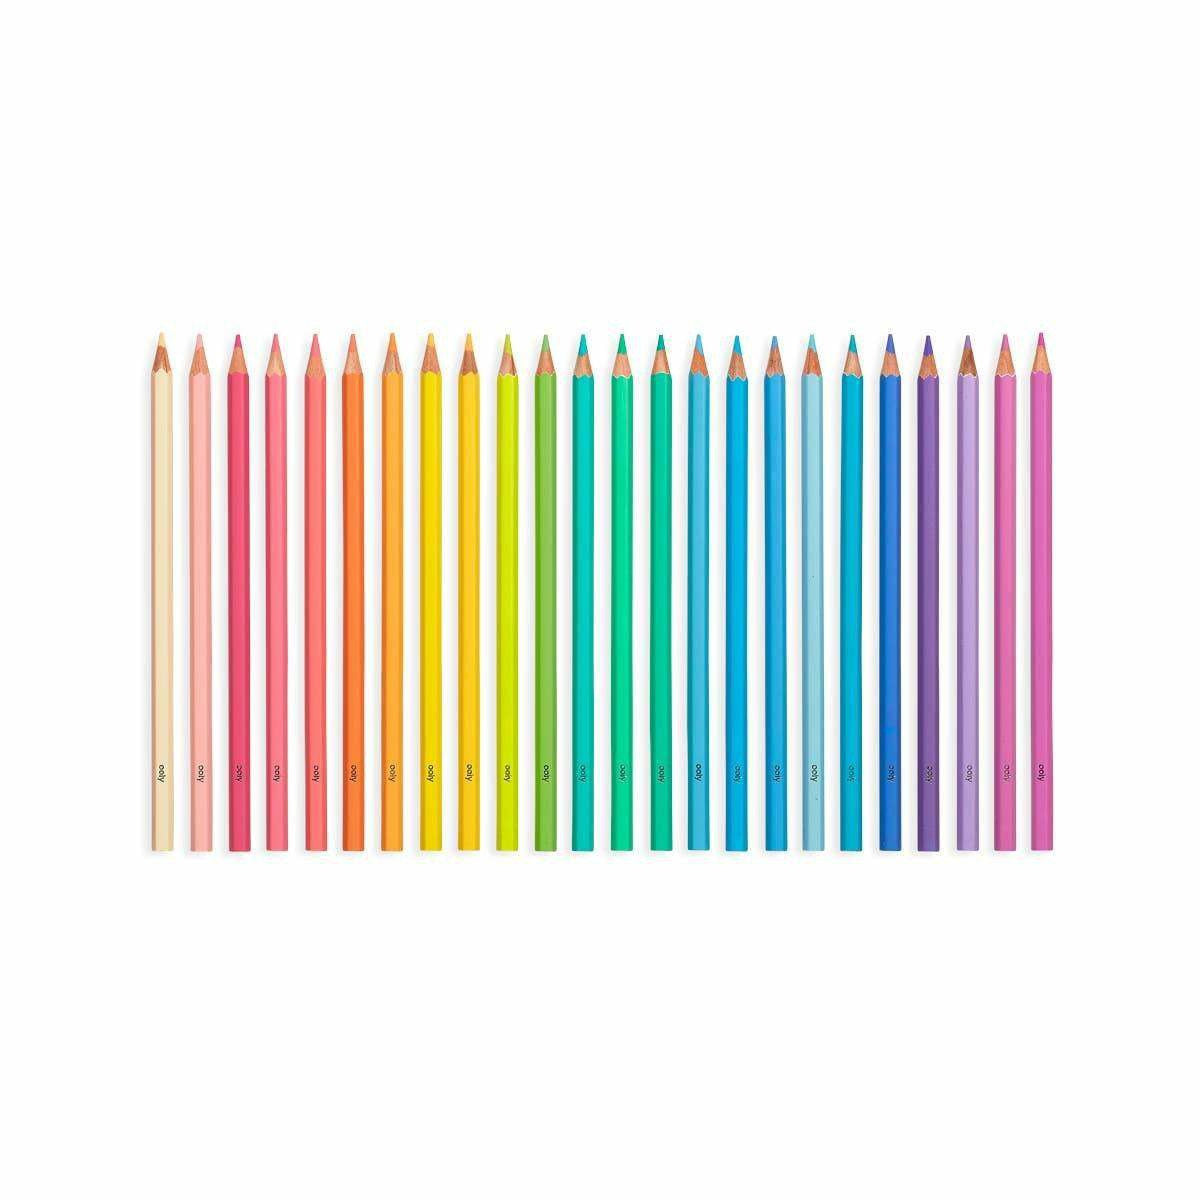 Ooly Pastel Hues Colored Pencils Set of 24